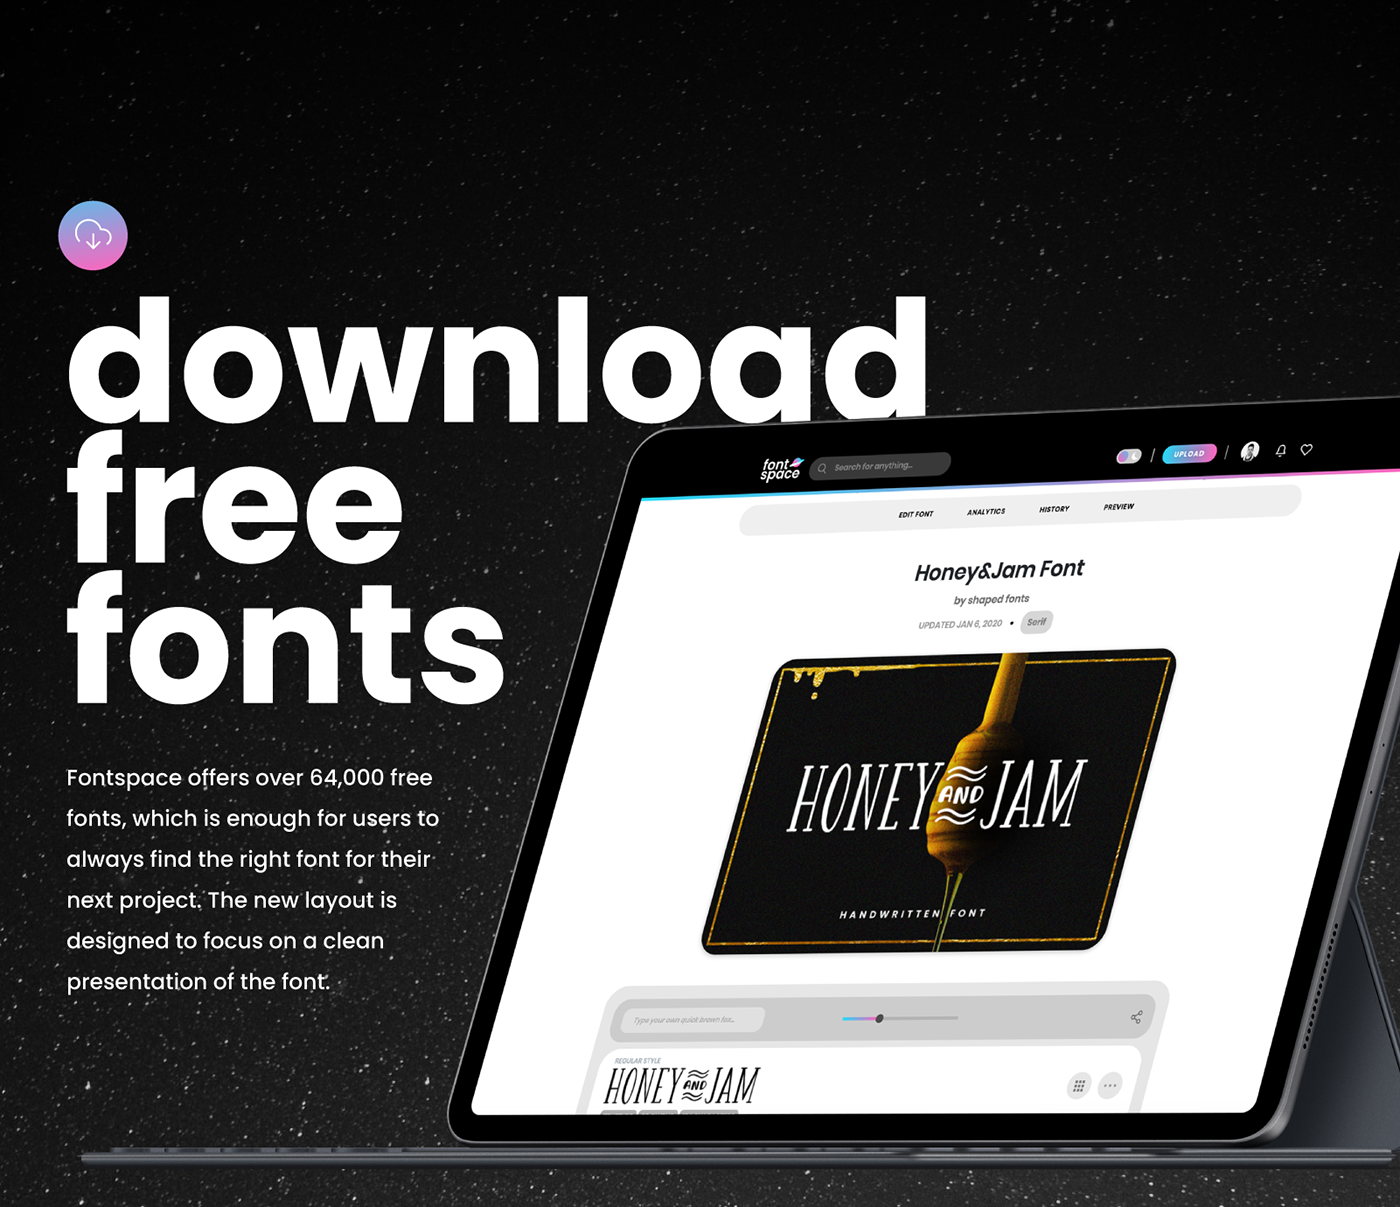 fonts fontspace free rebranding redesign browse collections dark mode branding  ui design